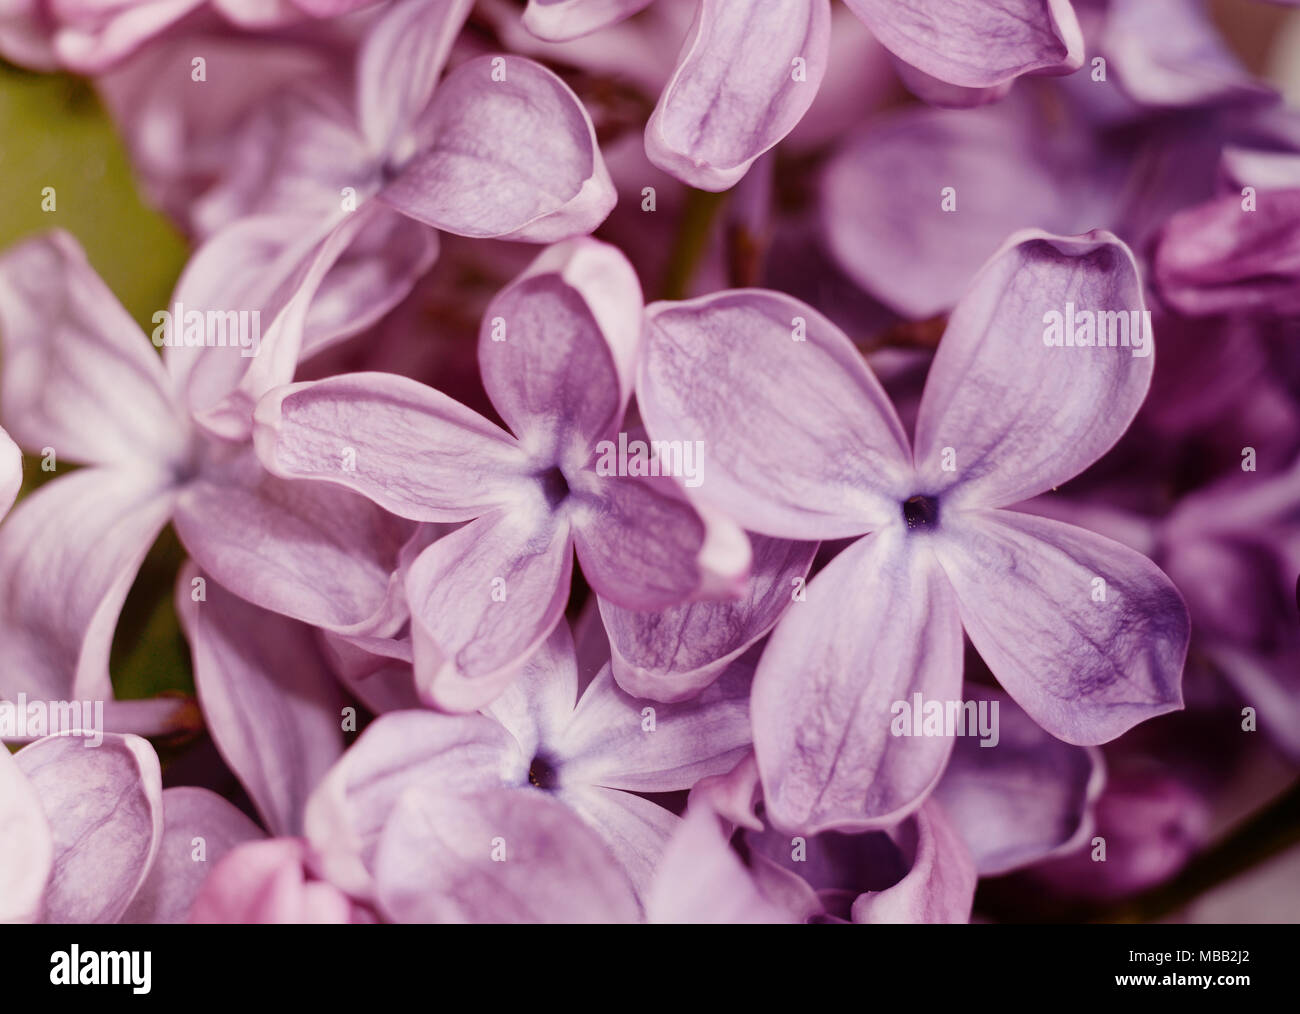 Close Up Photo Of Beautiful Lilac Flowers Purple Spring Flowers